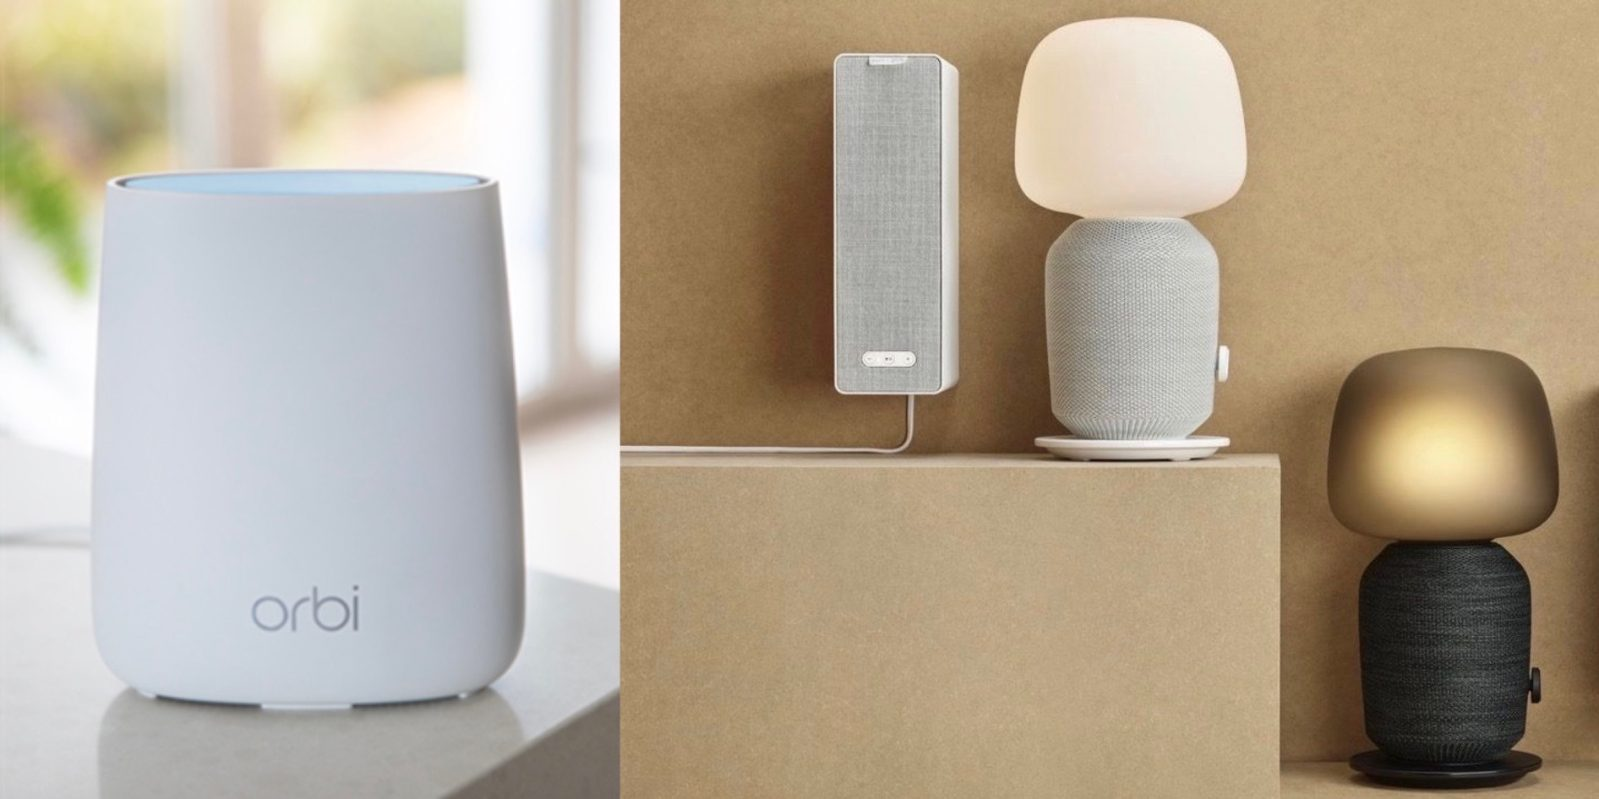 Orbi Mesh Wi Fi Routers Arrive At Apple Stores Sonos